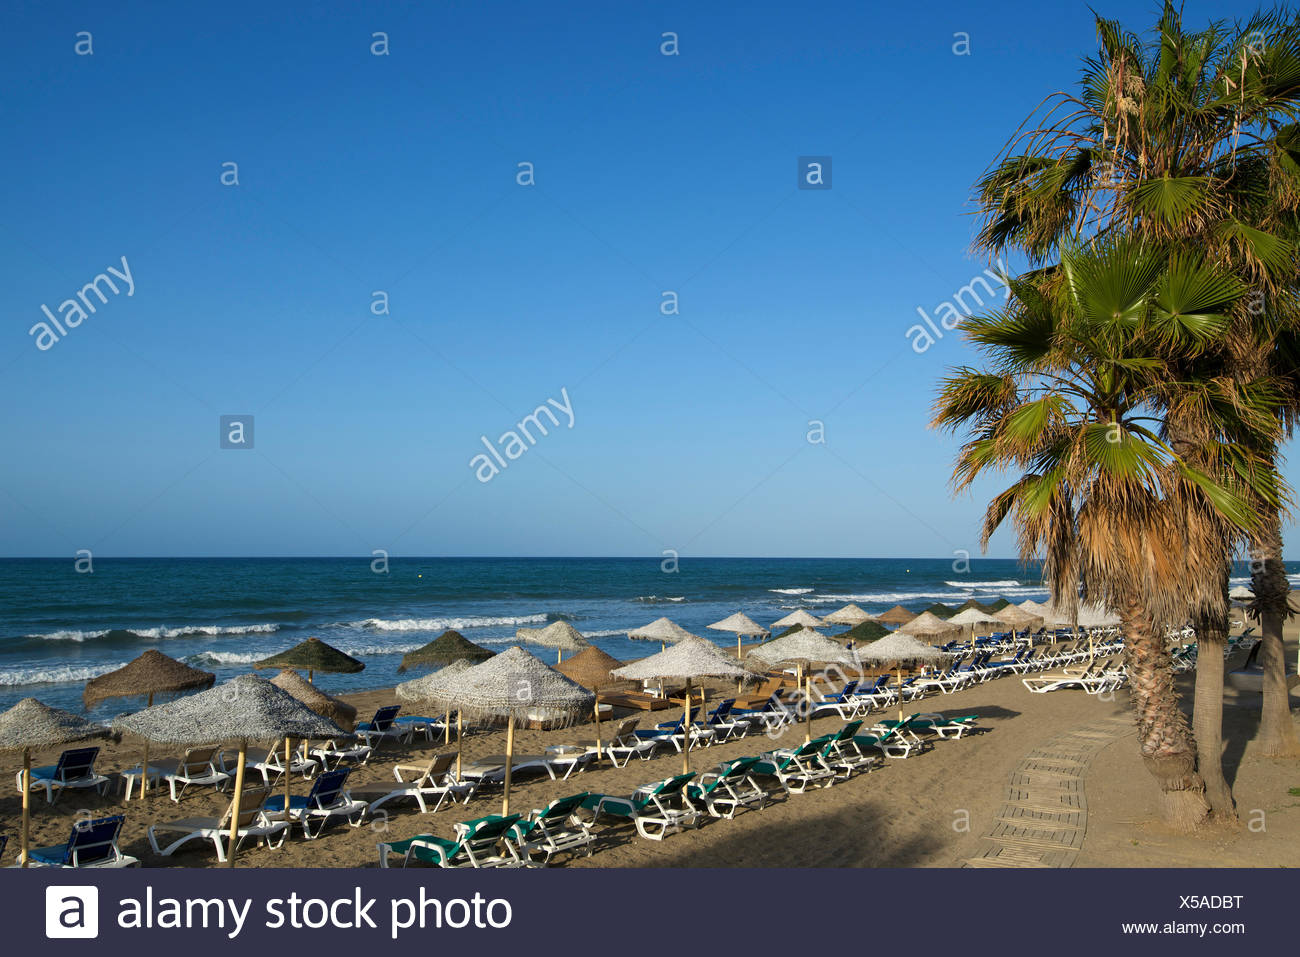 Andalusia, Spain, Europe, outside, day, Marbella, Costa del Sol, palm beach, beach, seashore, palm, nobody - Stock Image